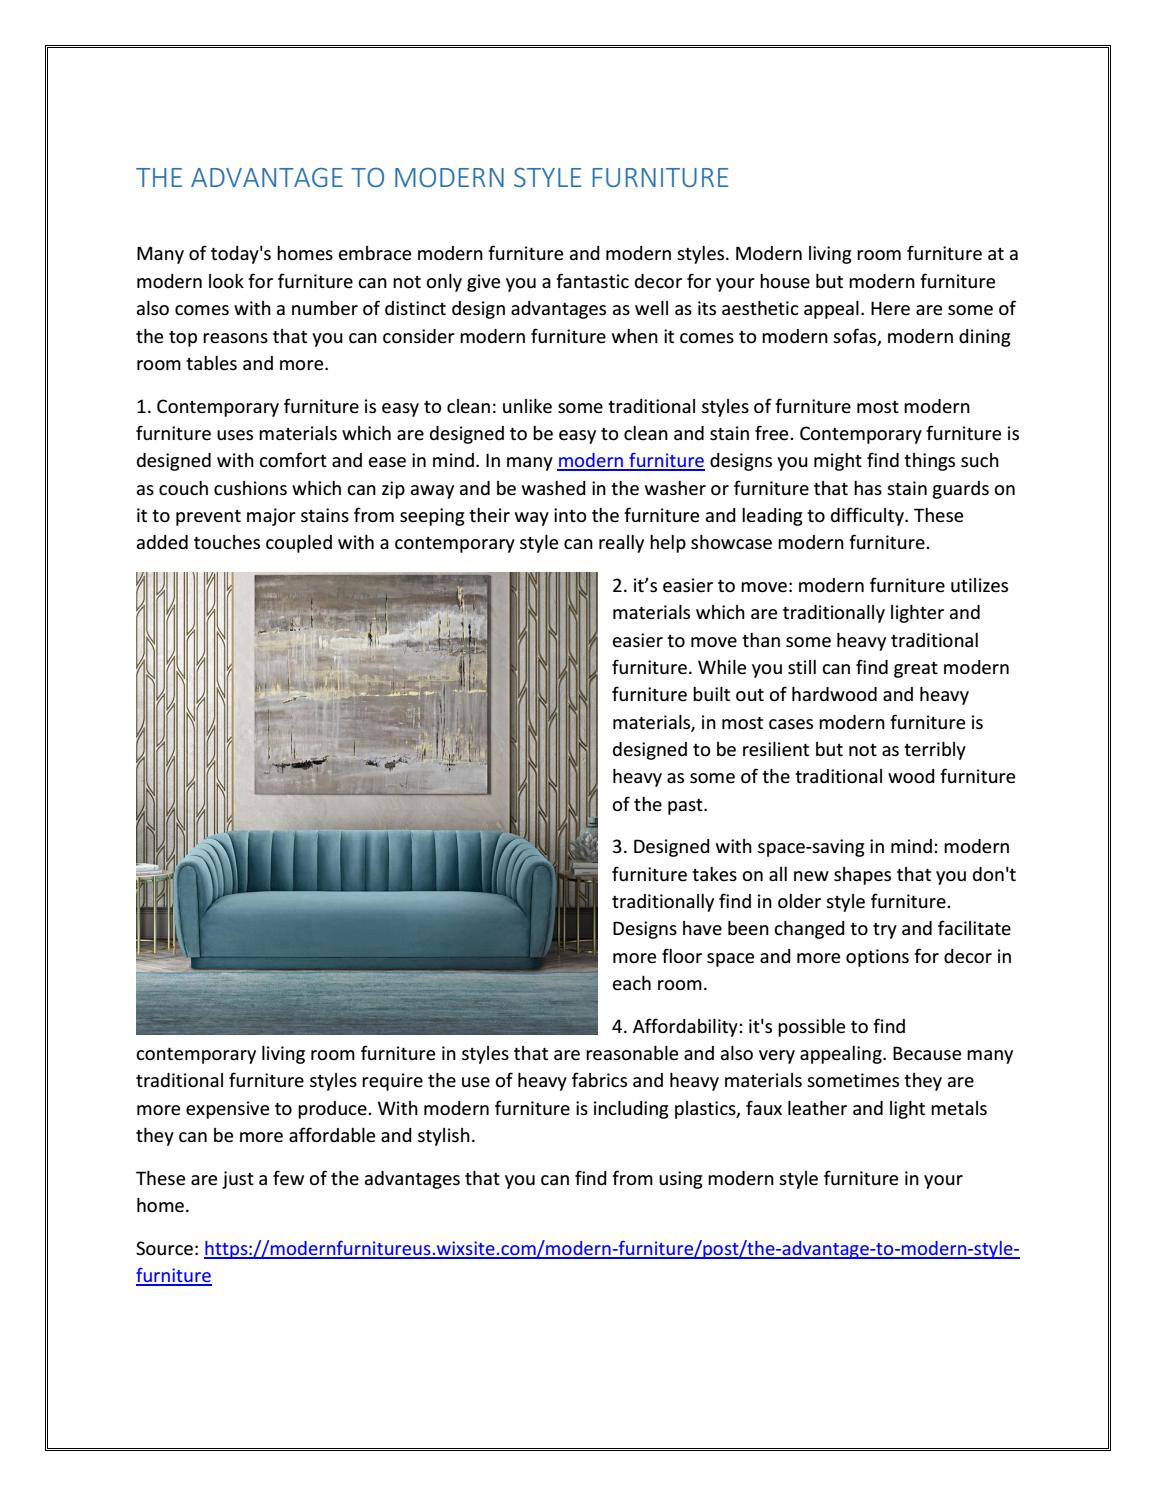 THE ADVANTAGE TO MODERN STYLE FURNITURE by ModTempo - issuu